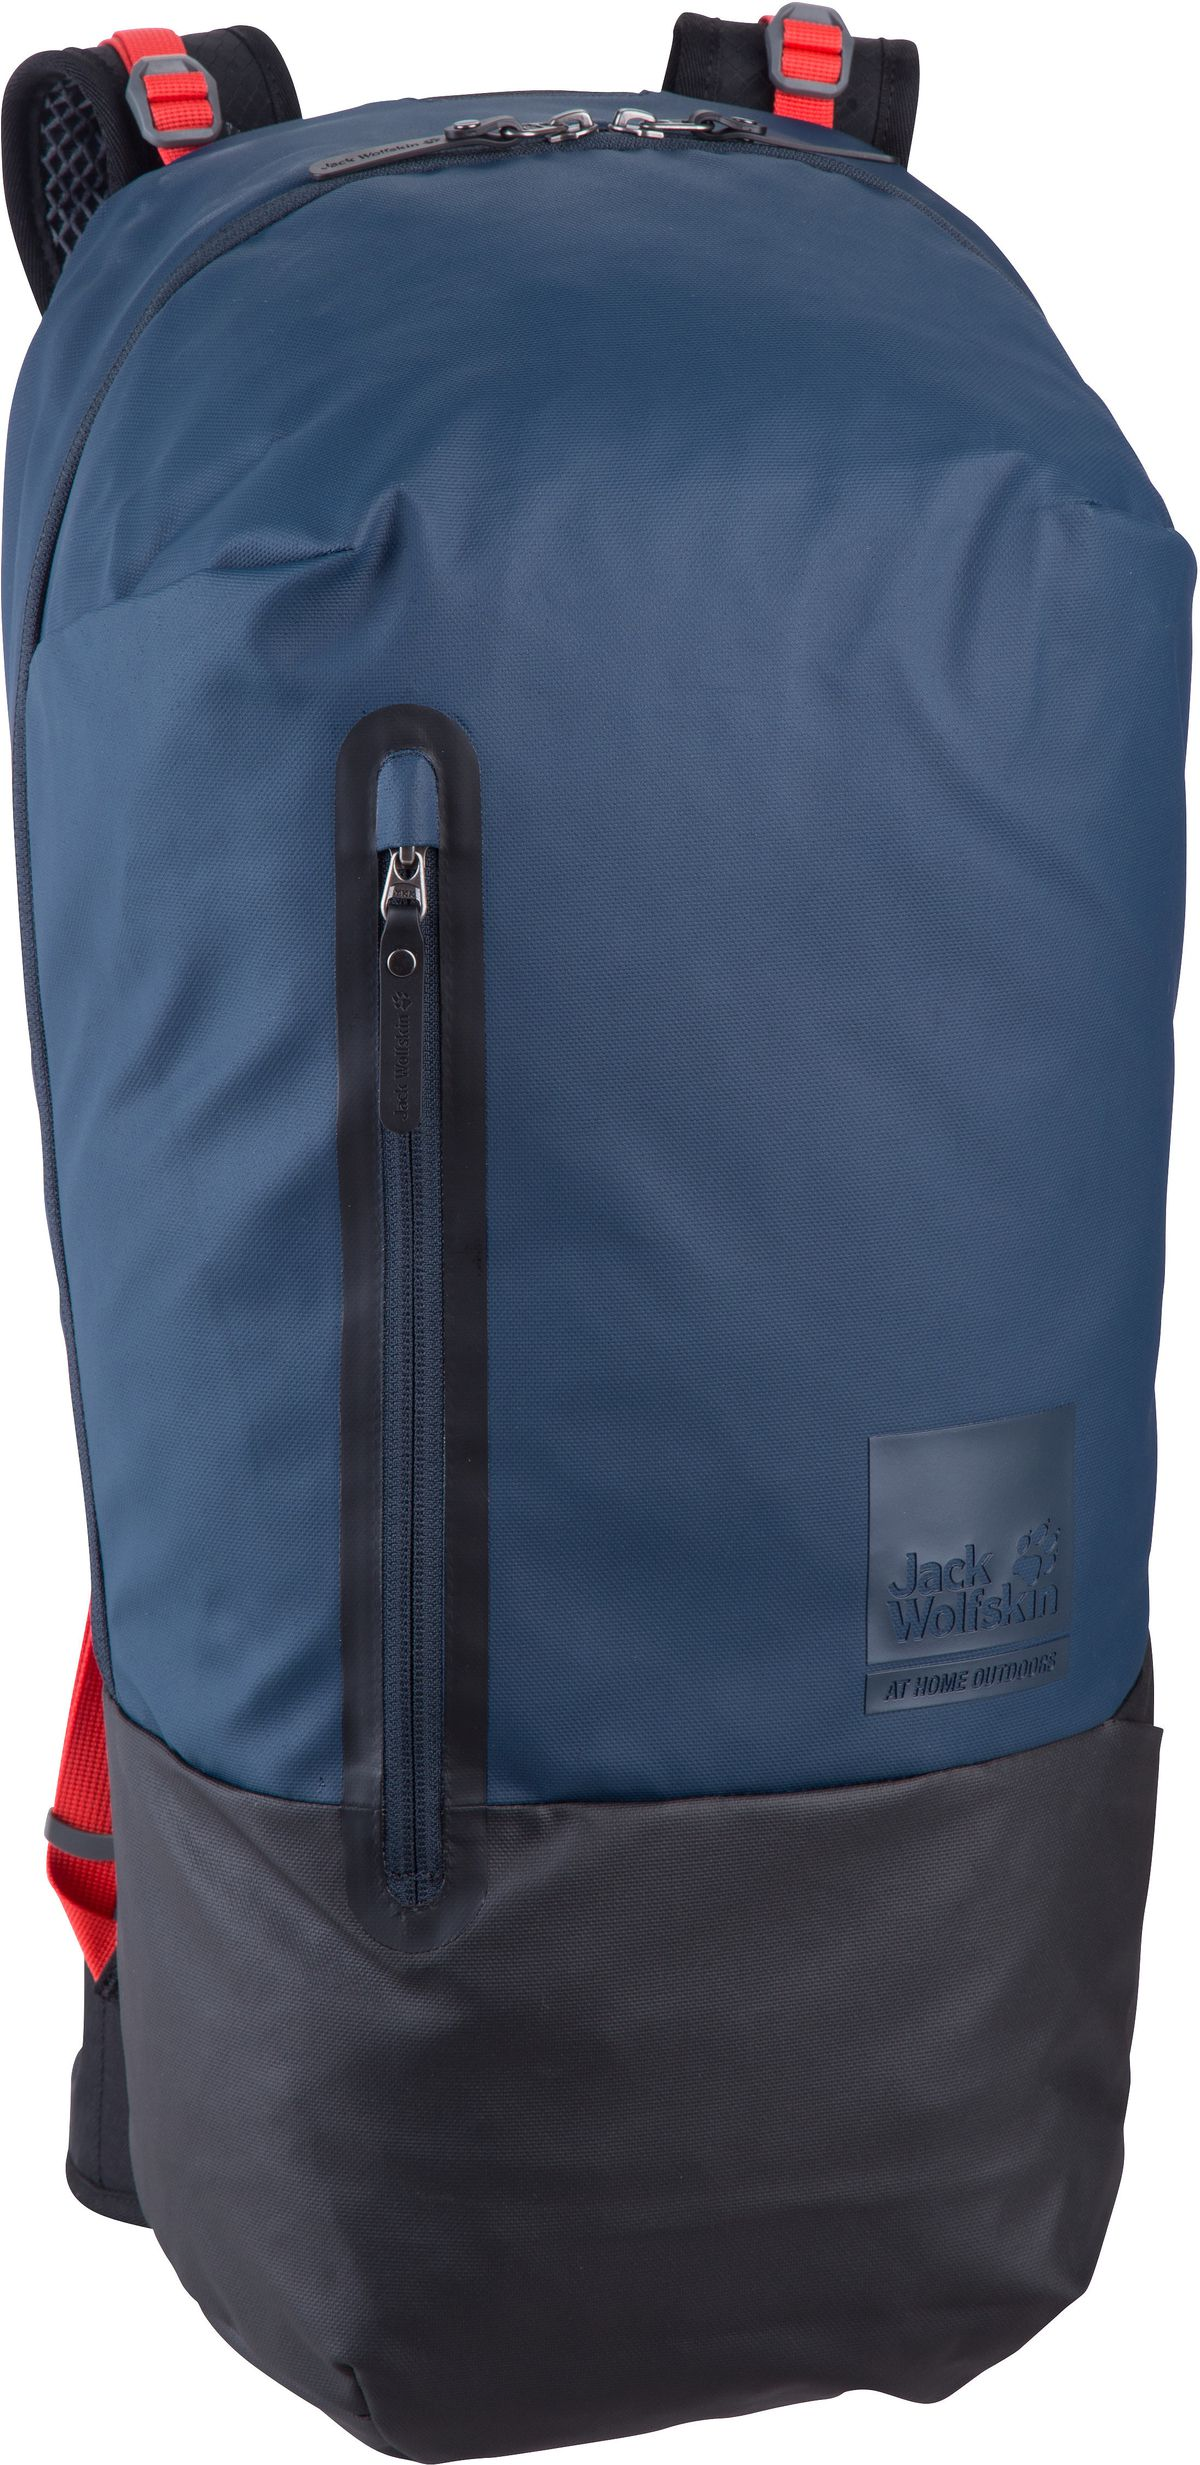 Wanderrucksack 365 Getaway 26 Pack Night Blue (26 Liter)